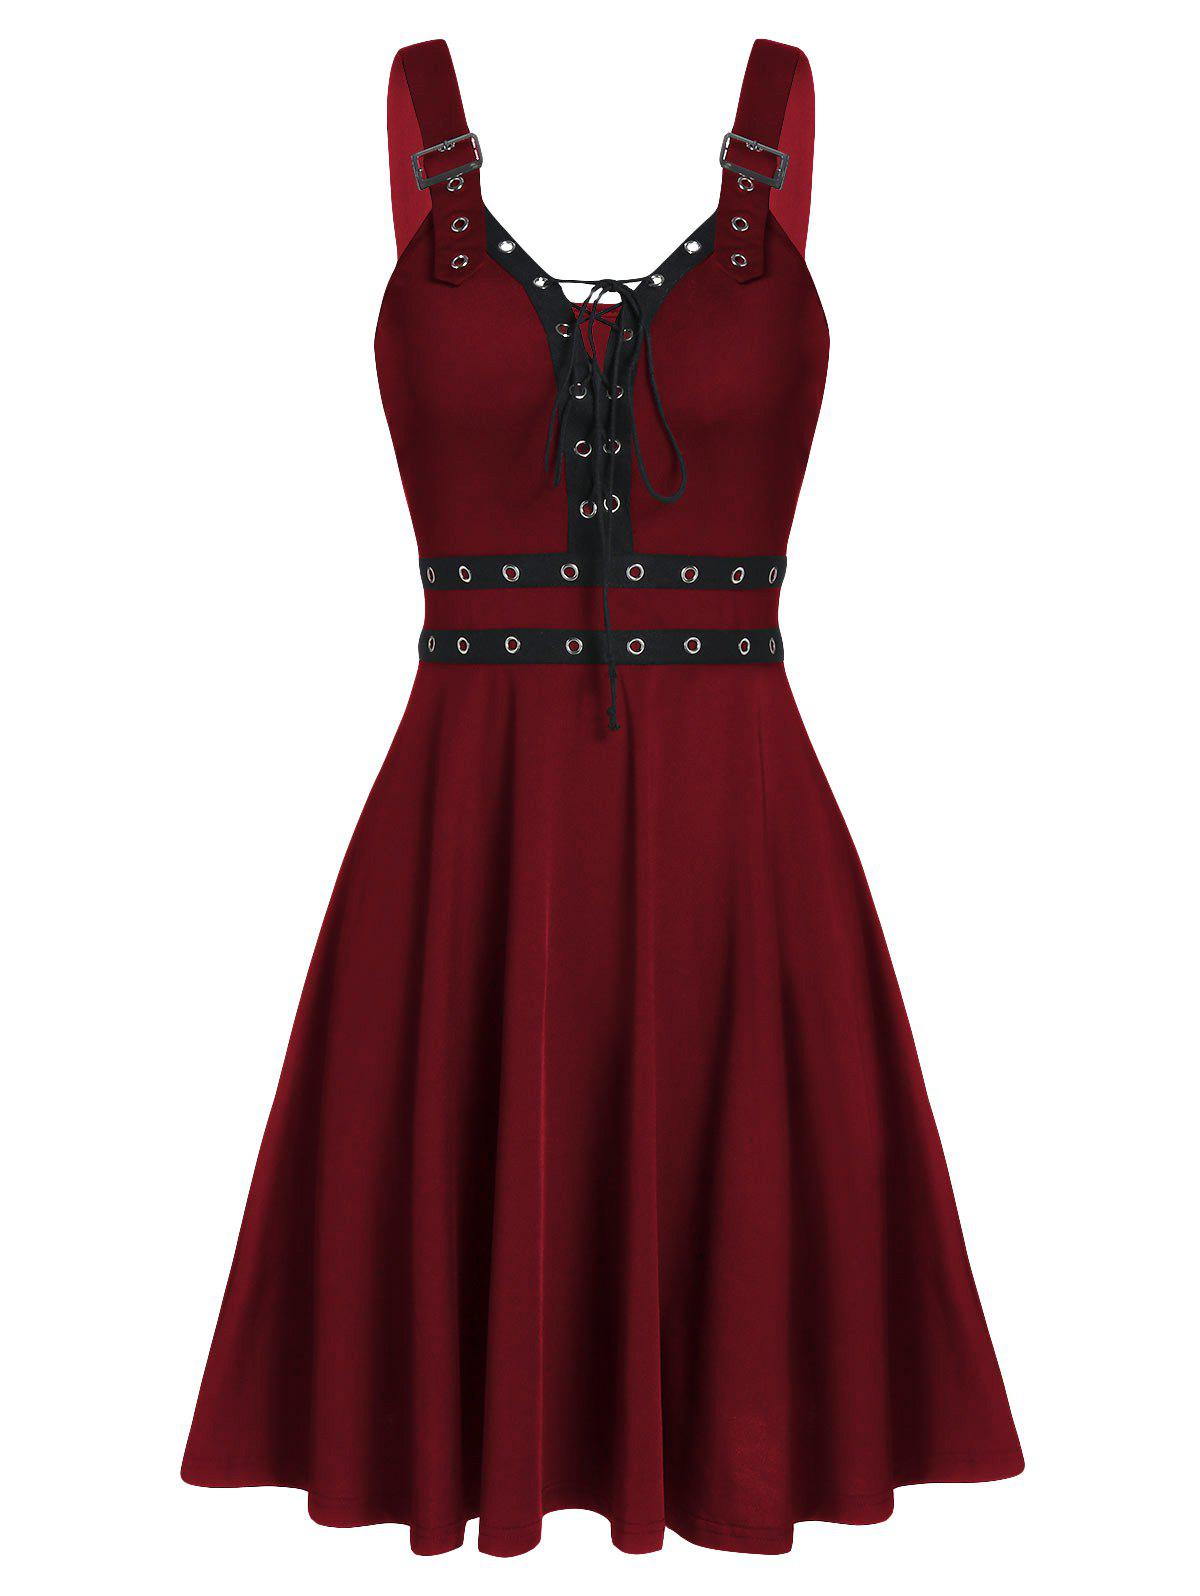 Hot Sweetheart Collar A Line Rings Gothic Dress